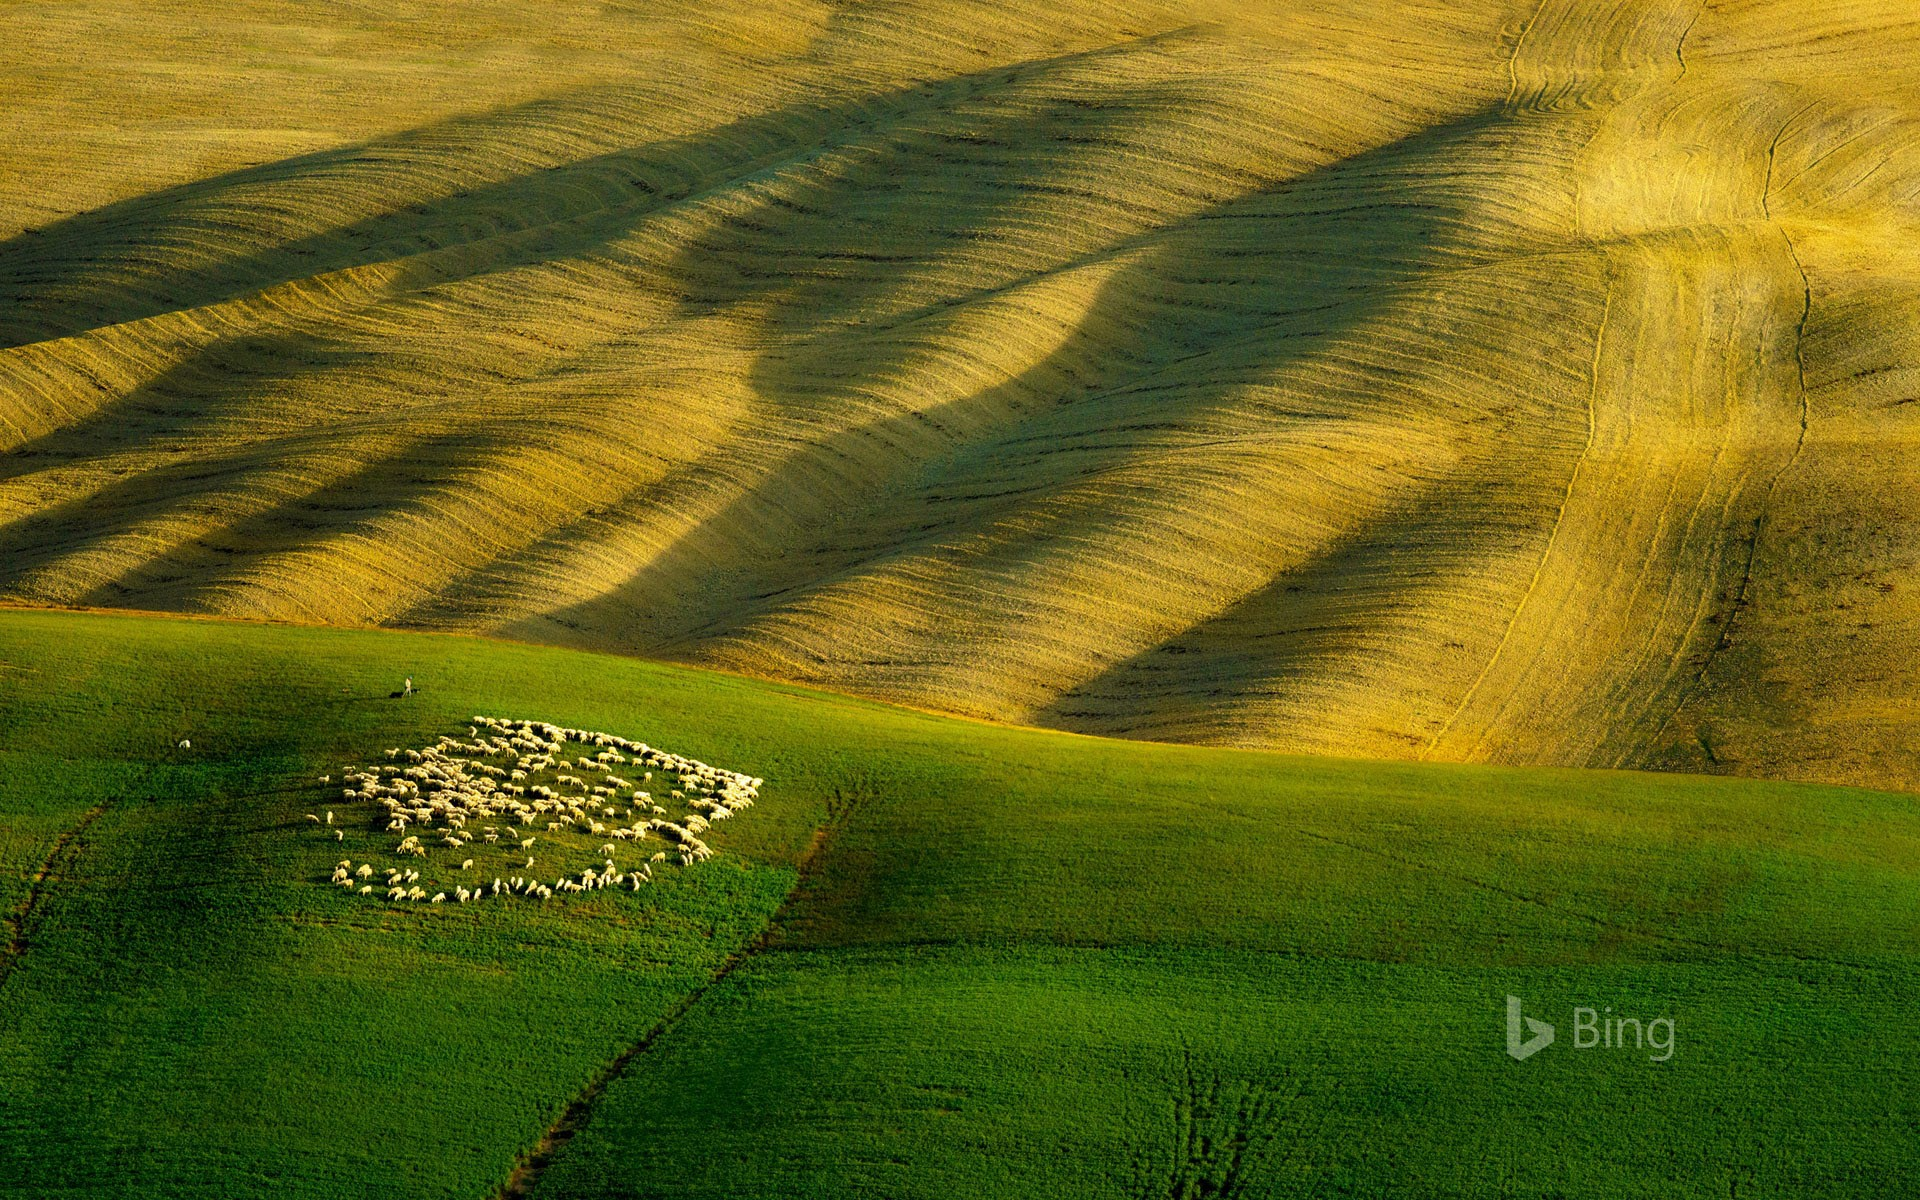 A flock of sheep grazing in Tuscany, Italy